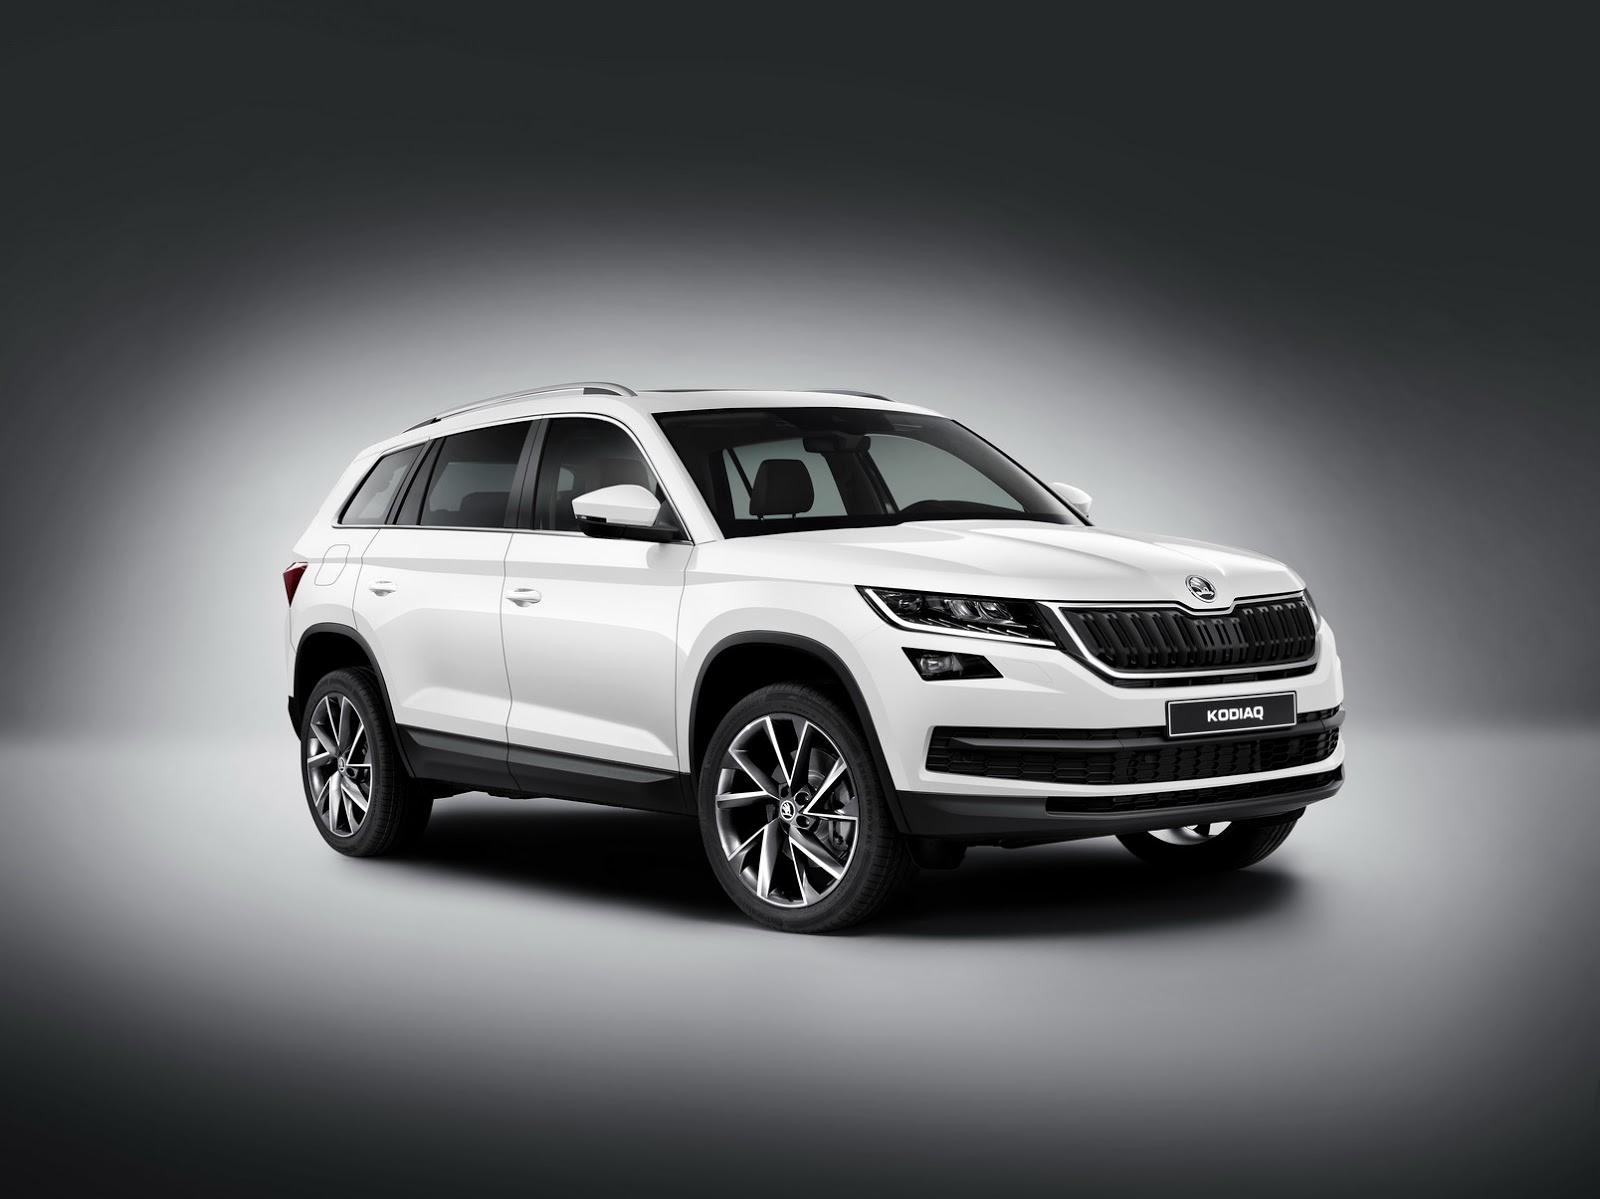 skoda kodiaq 7 seater suv officially unveiled. Black Bedroom Furniture Sets. Home Design Ideas